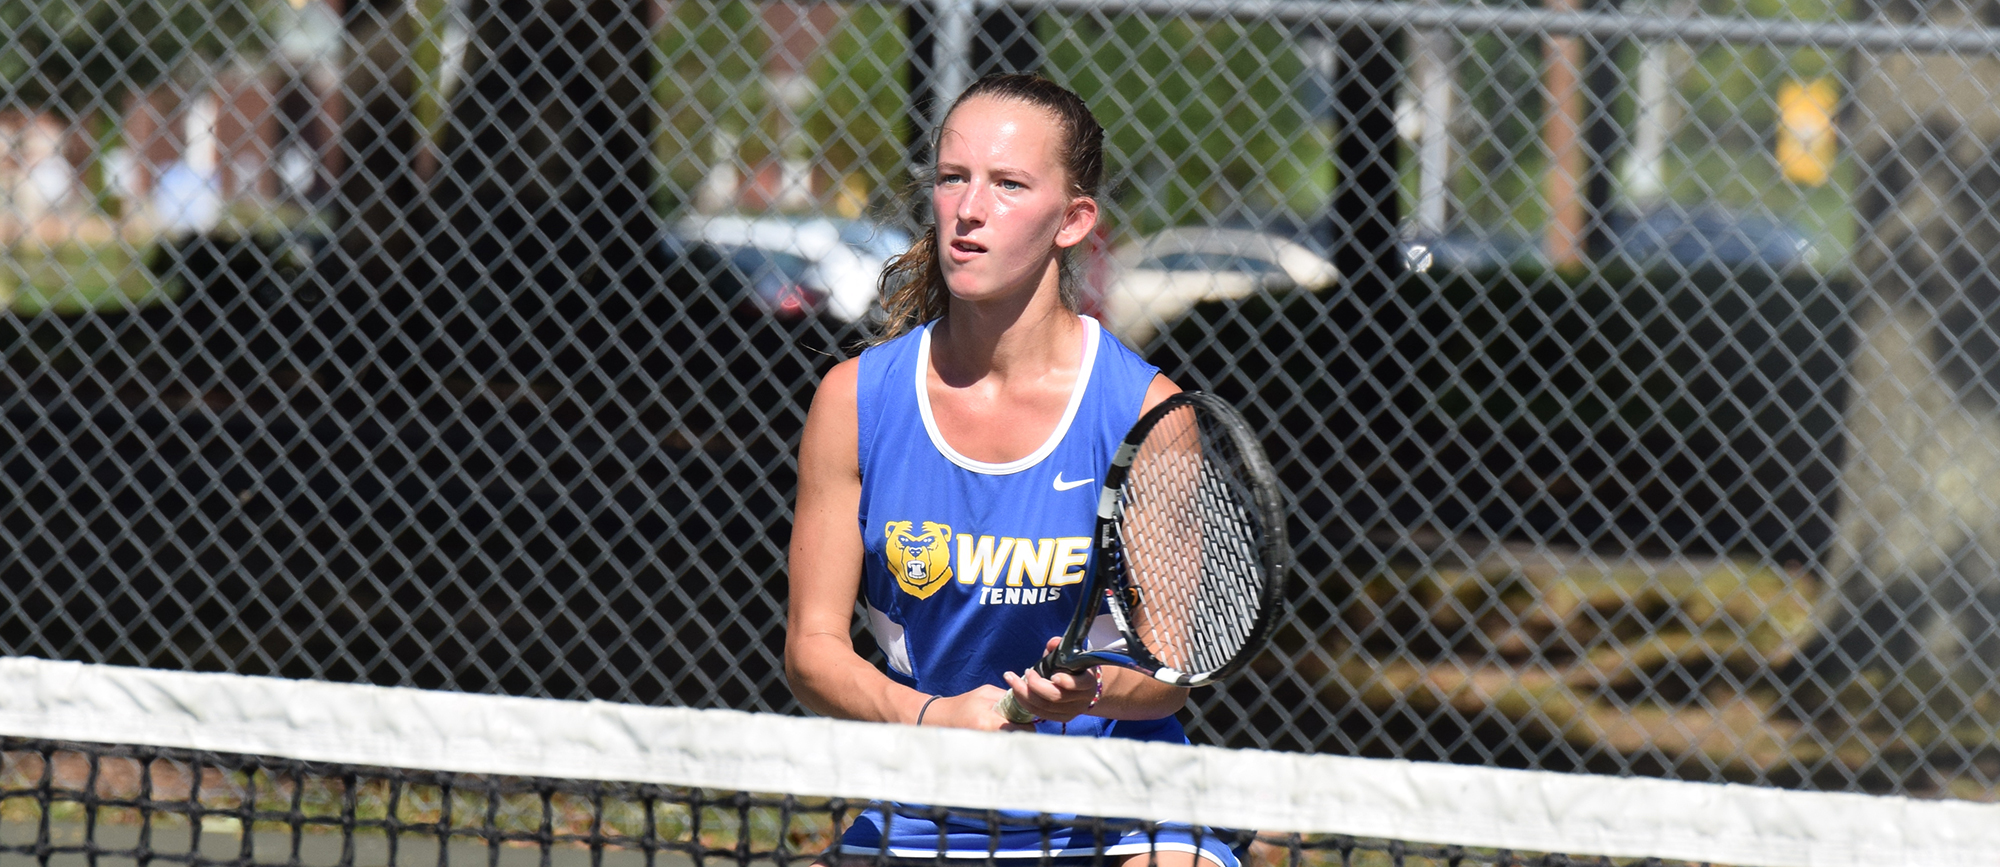 Junior Morgan Schrader posted a 6-1, 6-1 win at No. 2 singles, but the Golden Bears fell to JWU in their season opener on Sunday.